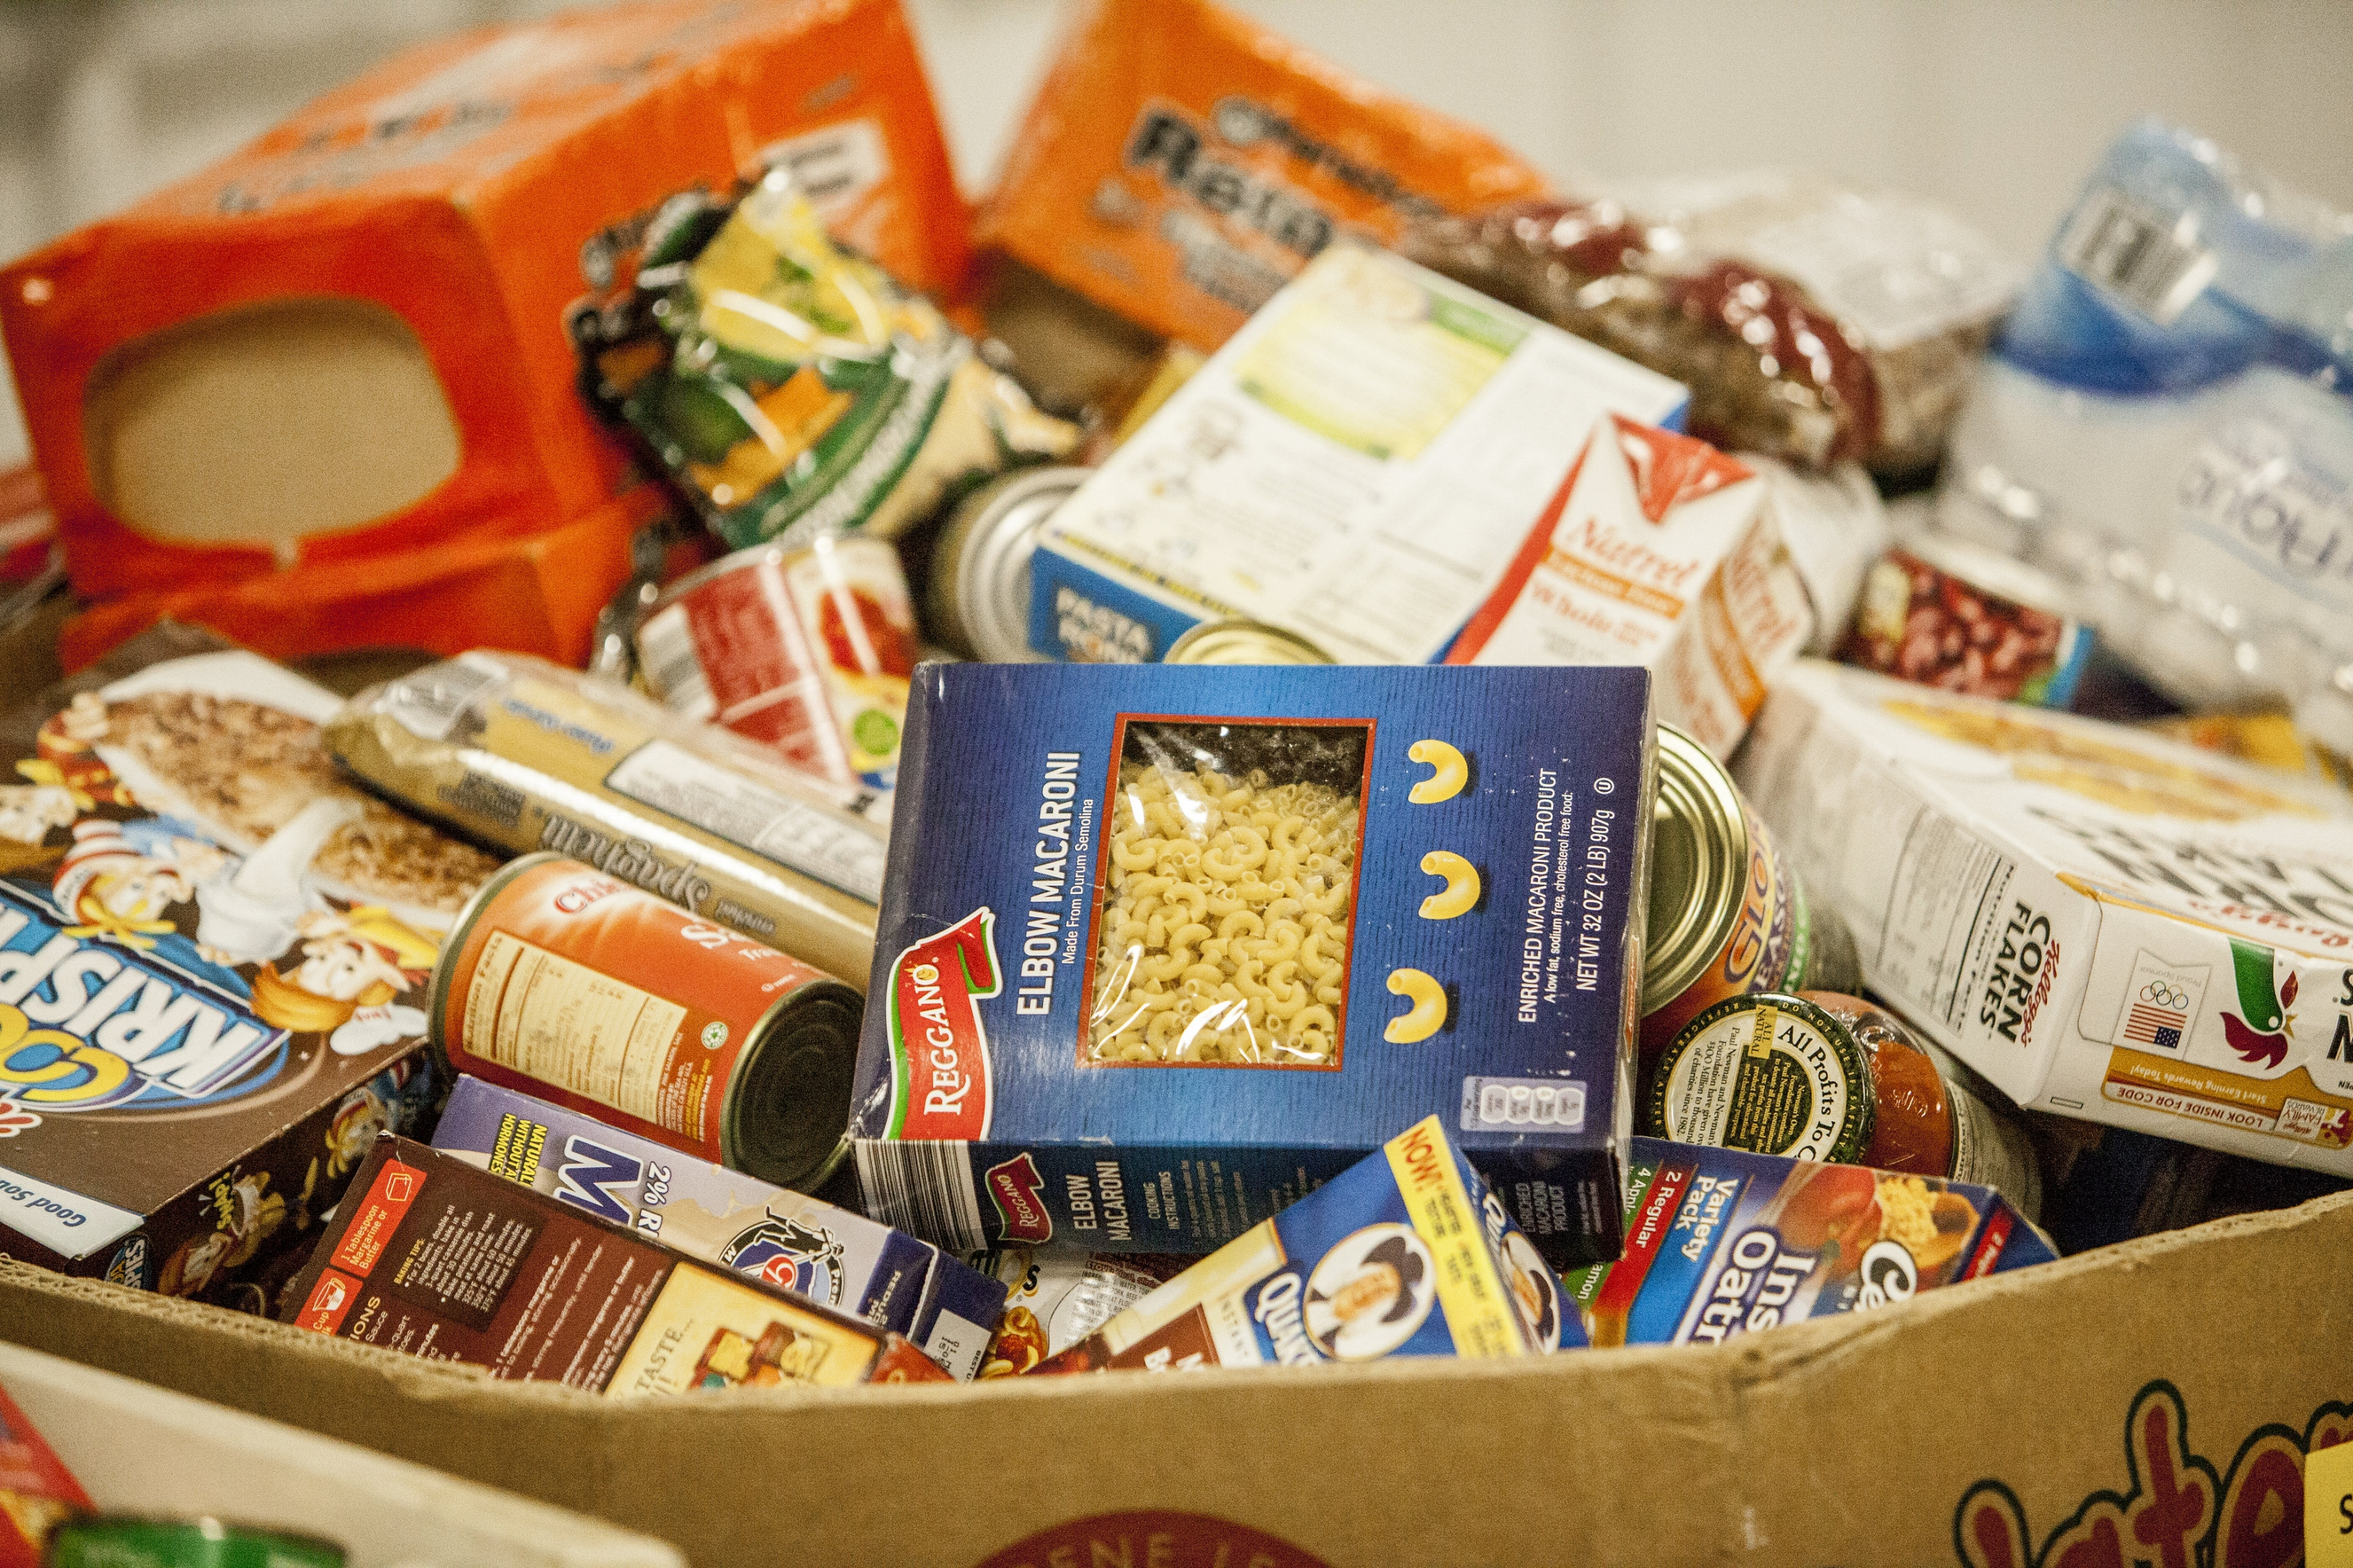 THE FOUNTAINGROVE CLUB BEGINS FOOD DONATION PROGRAM TO BENEFIT THE REDWOOD EMPIRE FOOD BANK